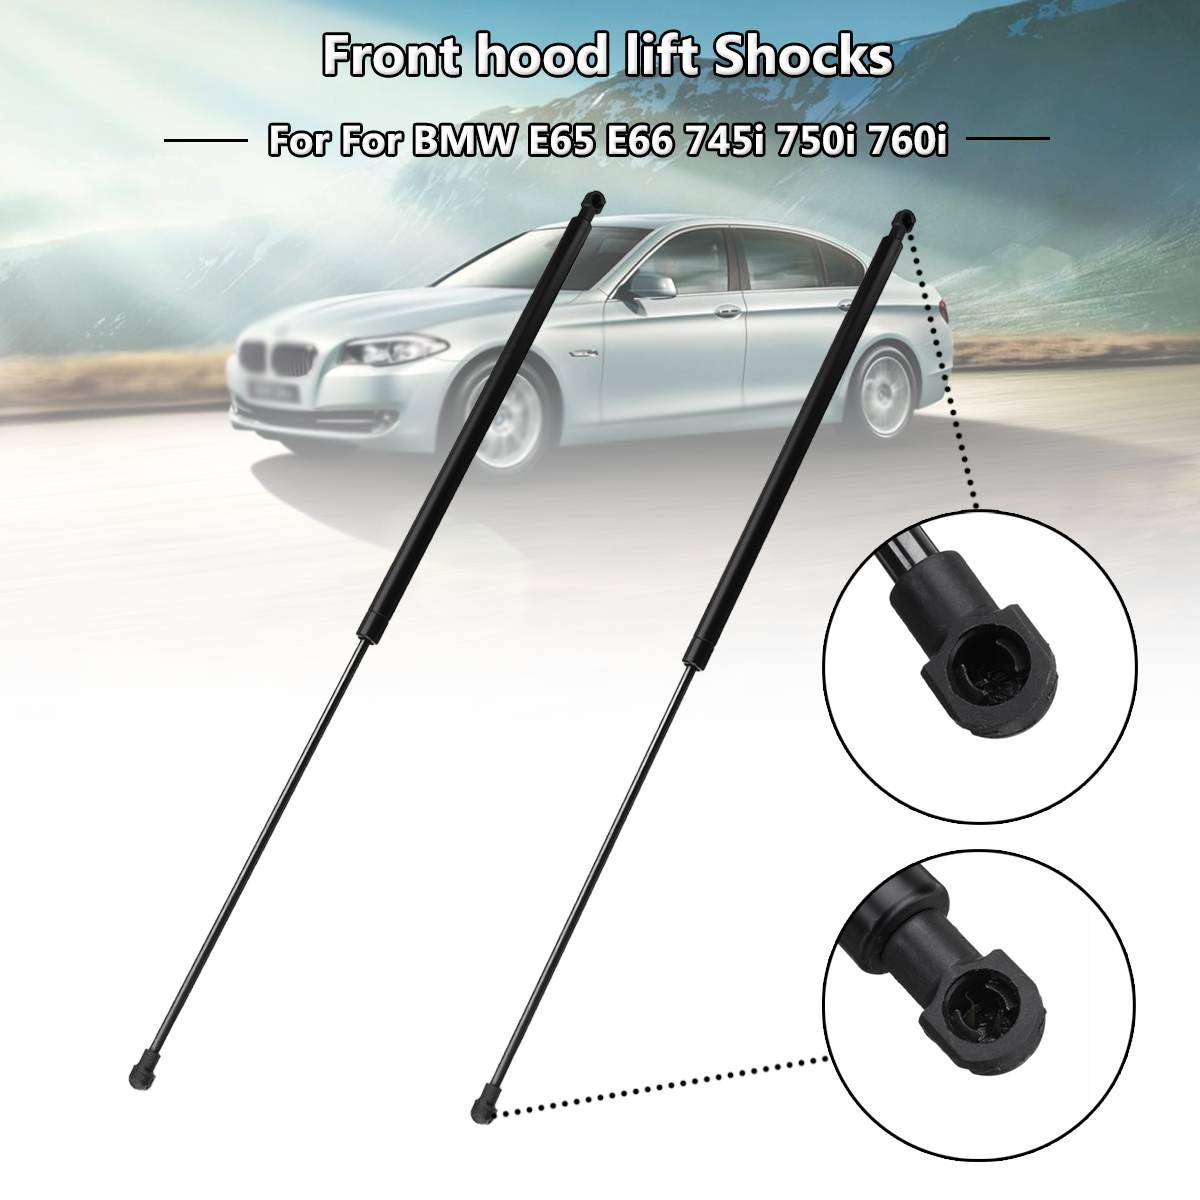 BOXI 2pcs Front Hood Gas Charged Lift Supports Struts Shocks Dampers For BMW E60 E61 5 Series SG402057,6481